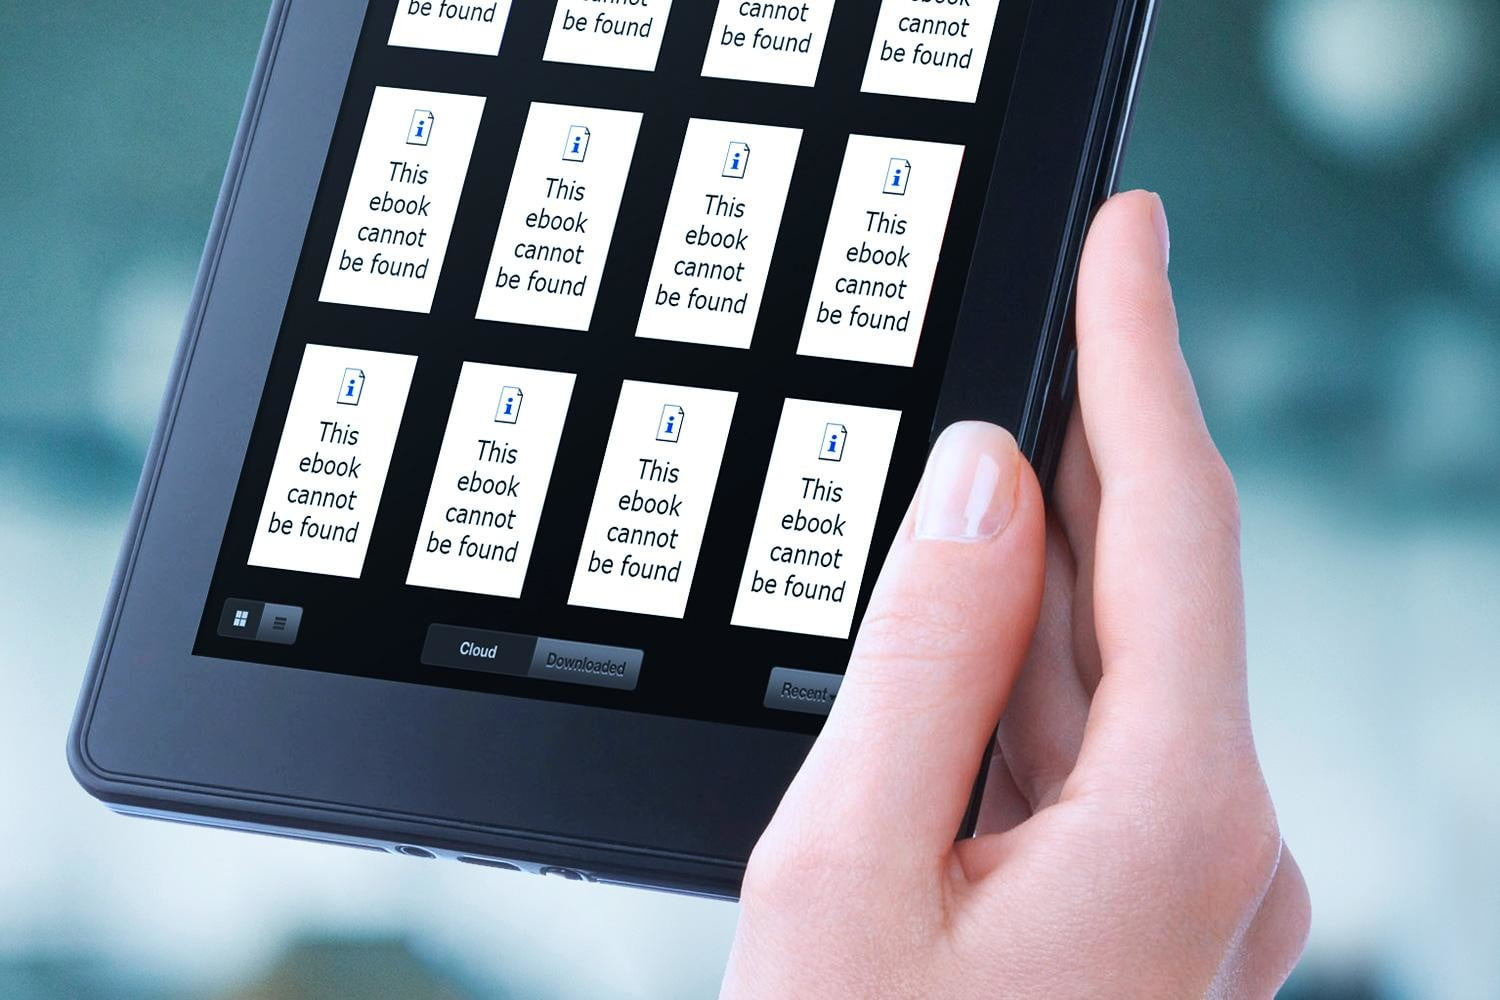 5 Reasons To Break The Drm On Your Ebooks (and Free Your Collection)   Digital Trends